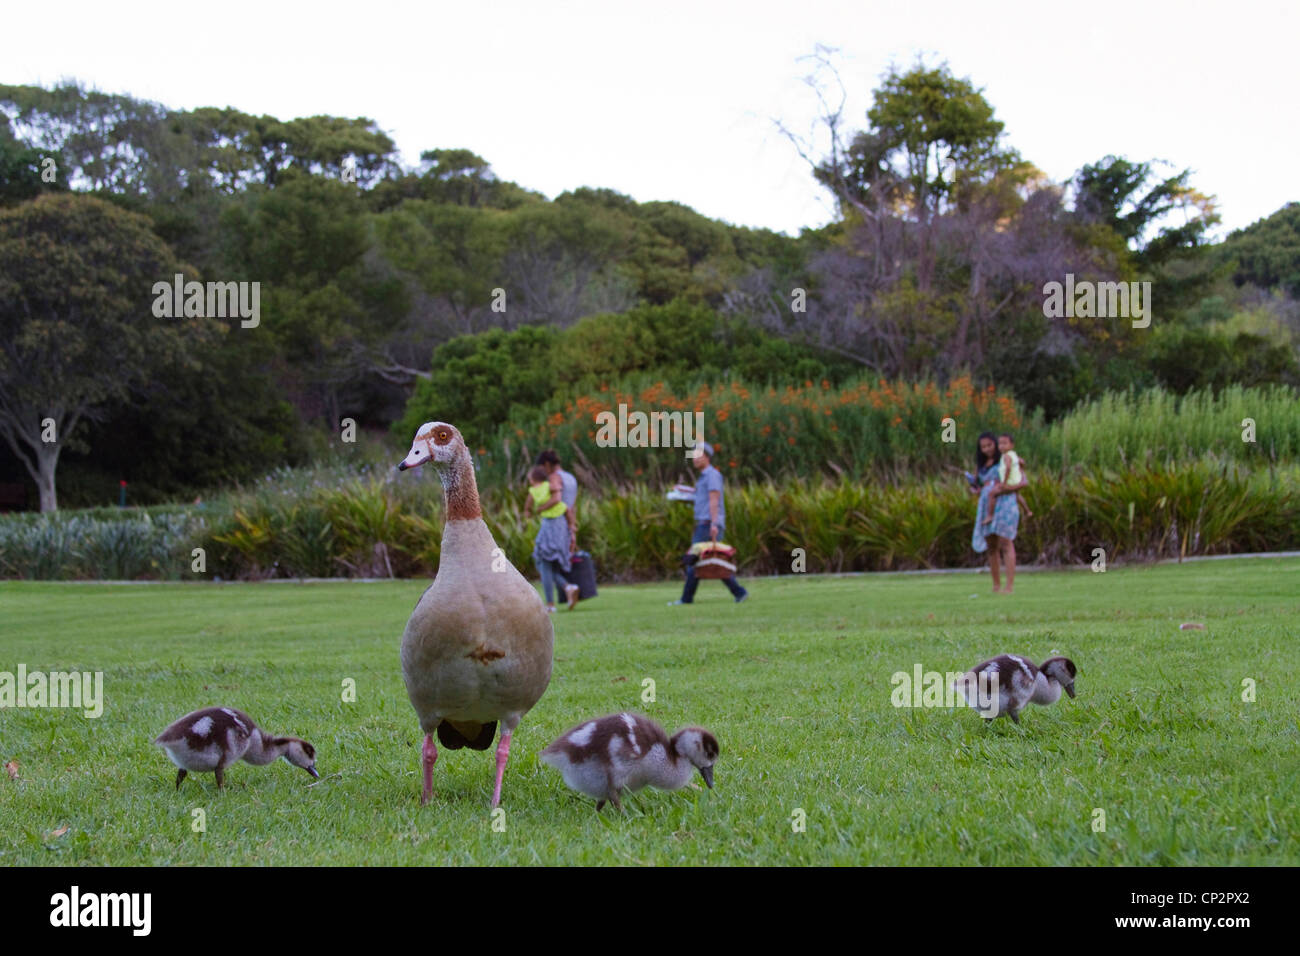 A passing family in the Kirstenbosch Gardens pause to watch an Egyptian goose and its goslings - Stock Image